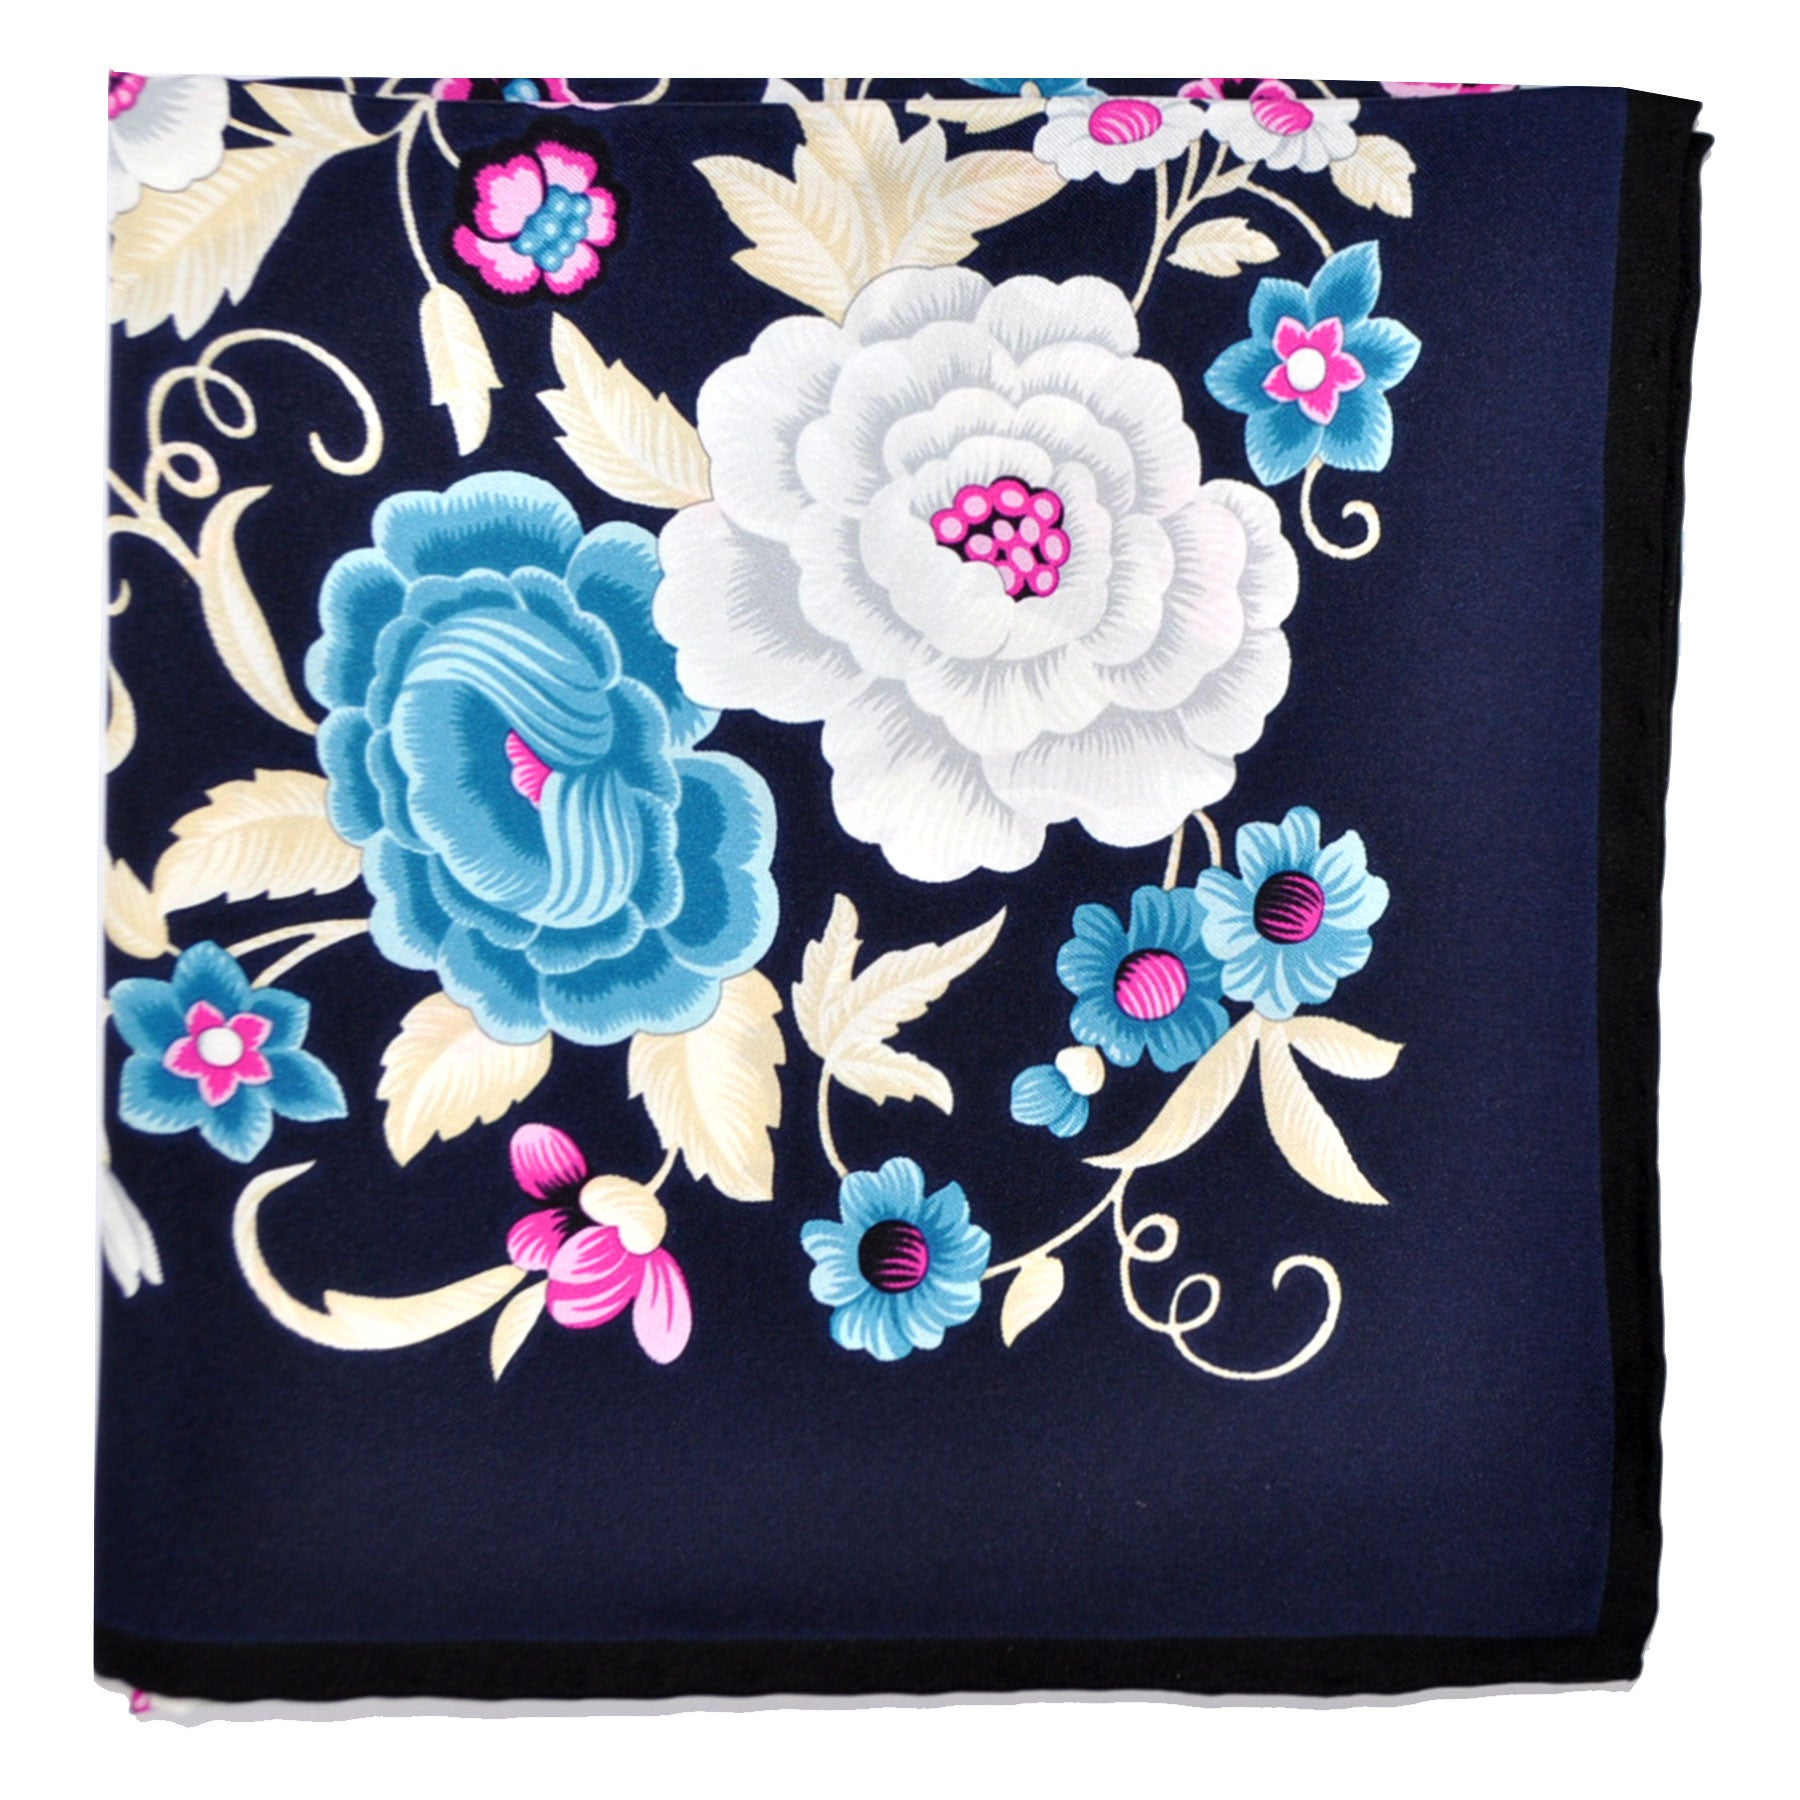 Loewe Scarf Black Blue Cream Floral - Silk Square Scarf